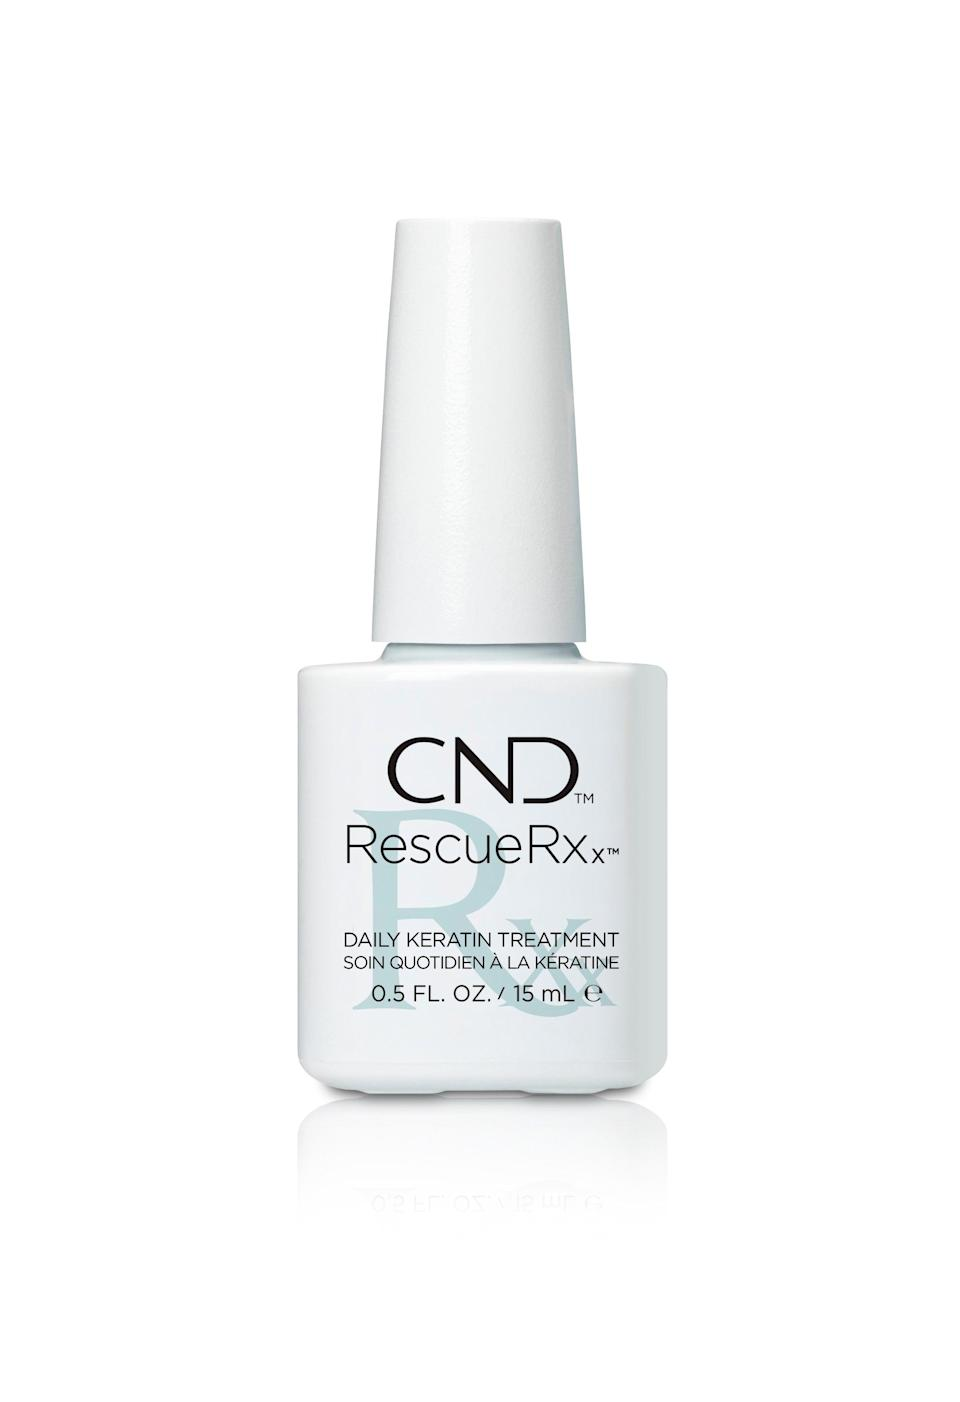 """<h3>CND RESCUERXx<br></h3><br>This professional nail treatment from CND uses the power of keratin proteins and moisturizing jojoba oil to magically lift those pesky <a href=""""https://www.medicalnewstoday.com/articles/317493.php"""" rel=""""nofollow noopener"""" target=""""_blank"""" data-ylk=""""slk:white speckle bruises"""" class=""""link rapid-noclick-resp"""">white speckle bruises</a> from your nails.<br><br><strong>CND</strong> Rescue RXx, $, available at <a href=""""https://go.skimresources.com/?id=30283X879131&url=https%3A%2F%2Fwww.ulta.com%2Frescuerxx%3FproductId%3DxlsImpprod13561073"""" rel=""""nofollow noopener"""" target=""""_blank"""" data-ylk=""""slk:Ulta Beauty"""" class=""""link rapid-noclick-resp"""">Ulta Beauty</a>"""